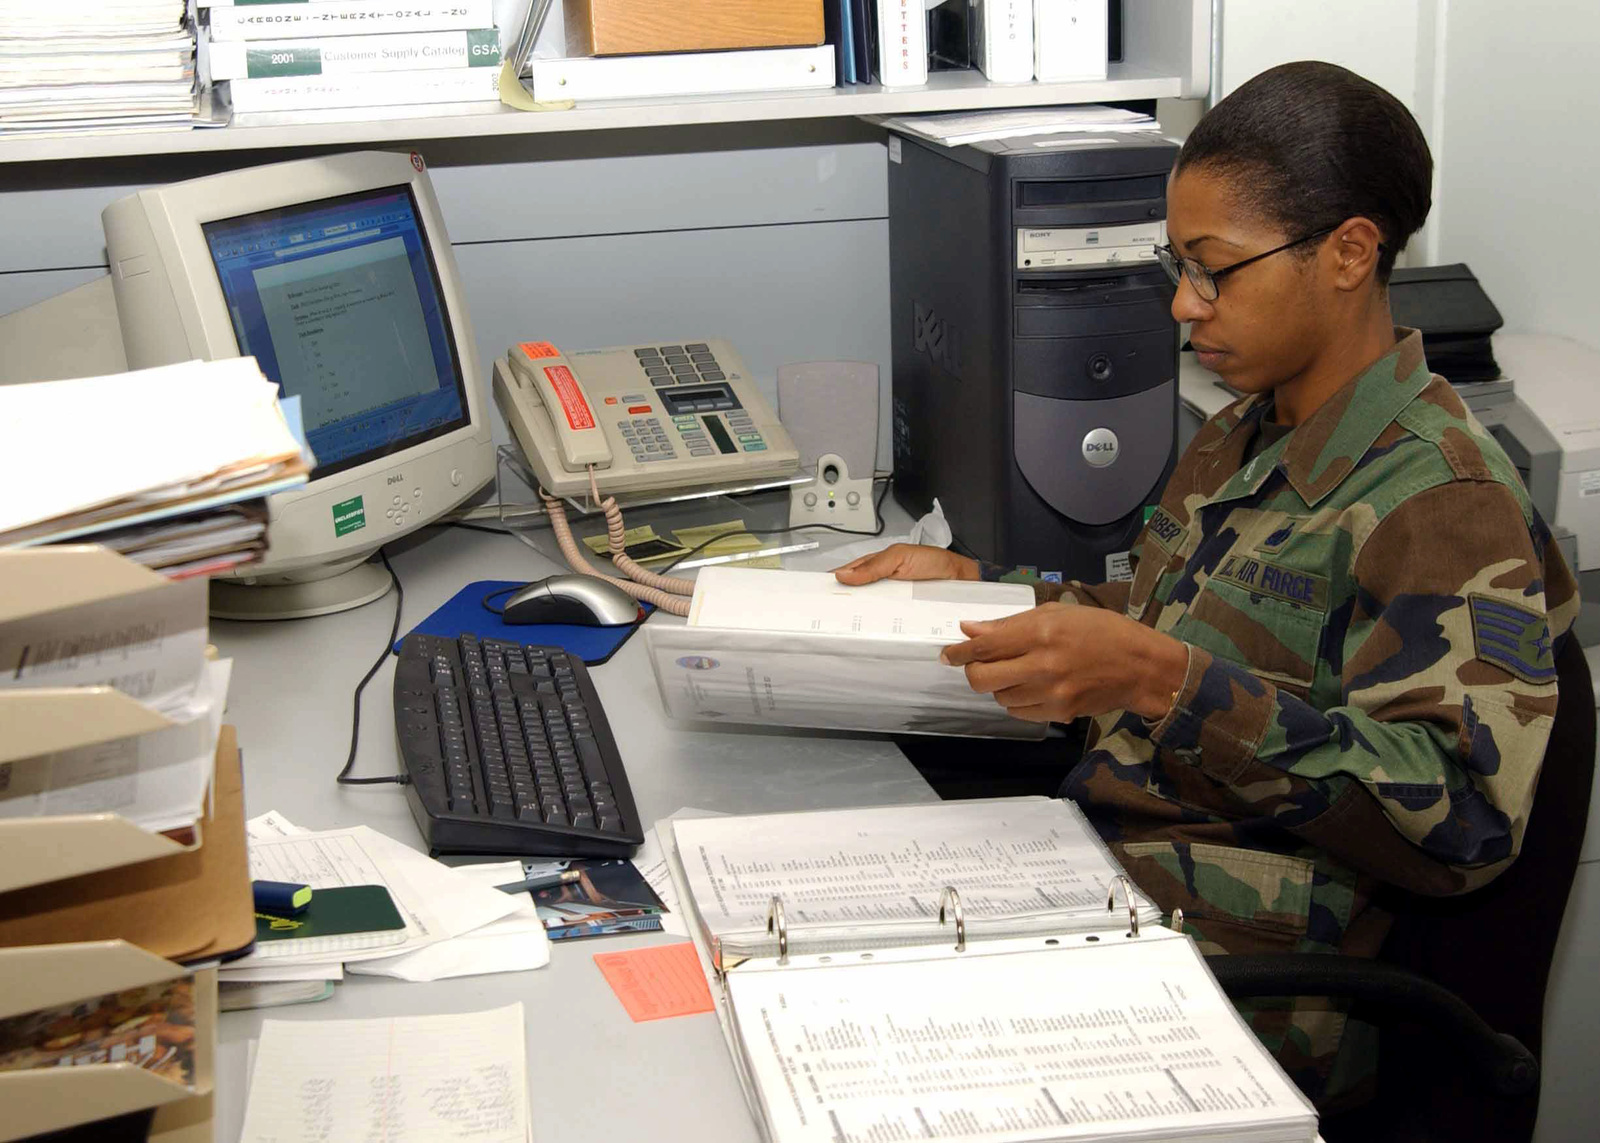 US Air Force (USAF) STAFF Sergeant (SSGT) Lanette Webber, Non-Commissioned Officer in Charge (NCOIC) of supply for the logistics directorate, researches her supply accounts inside her office, while deployed at Incirlik Air Base (AB), Turkey, in support of Combined Task Force (CTF), Operation NORTHERN WATCH